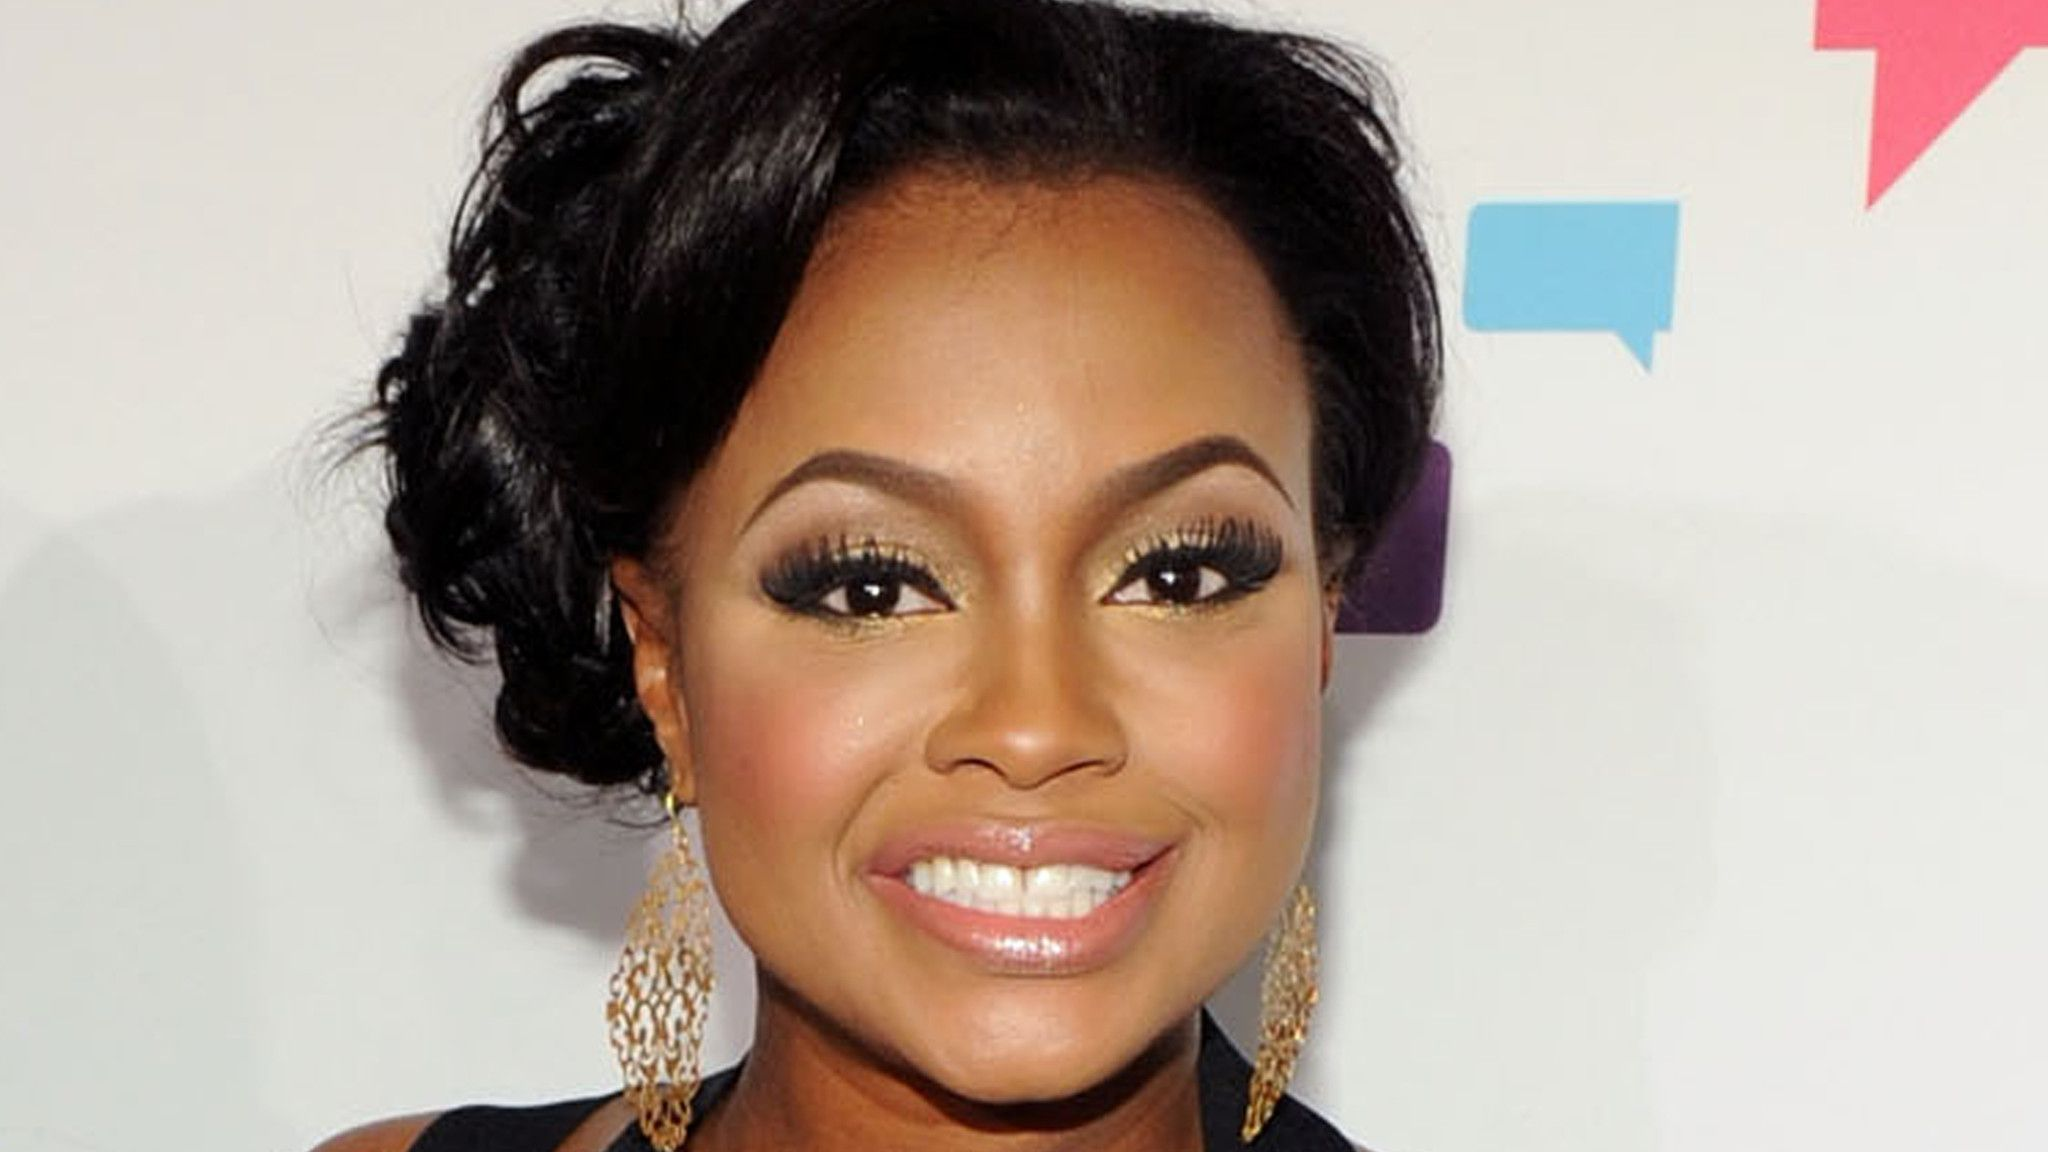 phaedra parks boyfriendphaedra parks wiki, phaedra parks wikipedia, phaedra parks, phaedra parks net worth, phaedra parks age, phaedra parks bio, phaedra parks net worth 2014, phaedra parks birthday, phaedra parks instagram, phaedra parks net worth 2015, phaedra parks affair, phaedra parks funeral home, phaedra parks twitter, phaedra parks and apollo nida, phaedra parks husband, phaedra parks lawyer, phaedra parks boyfriend, phaedra parks chocolate, phaedra parks house, phaedra parks and apollo